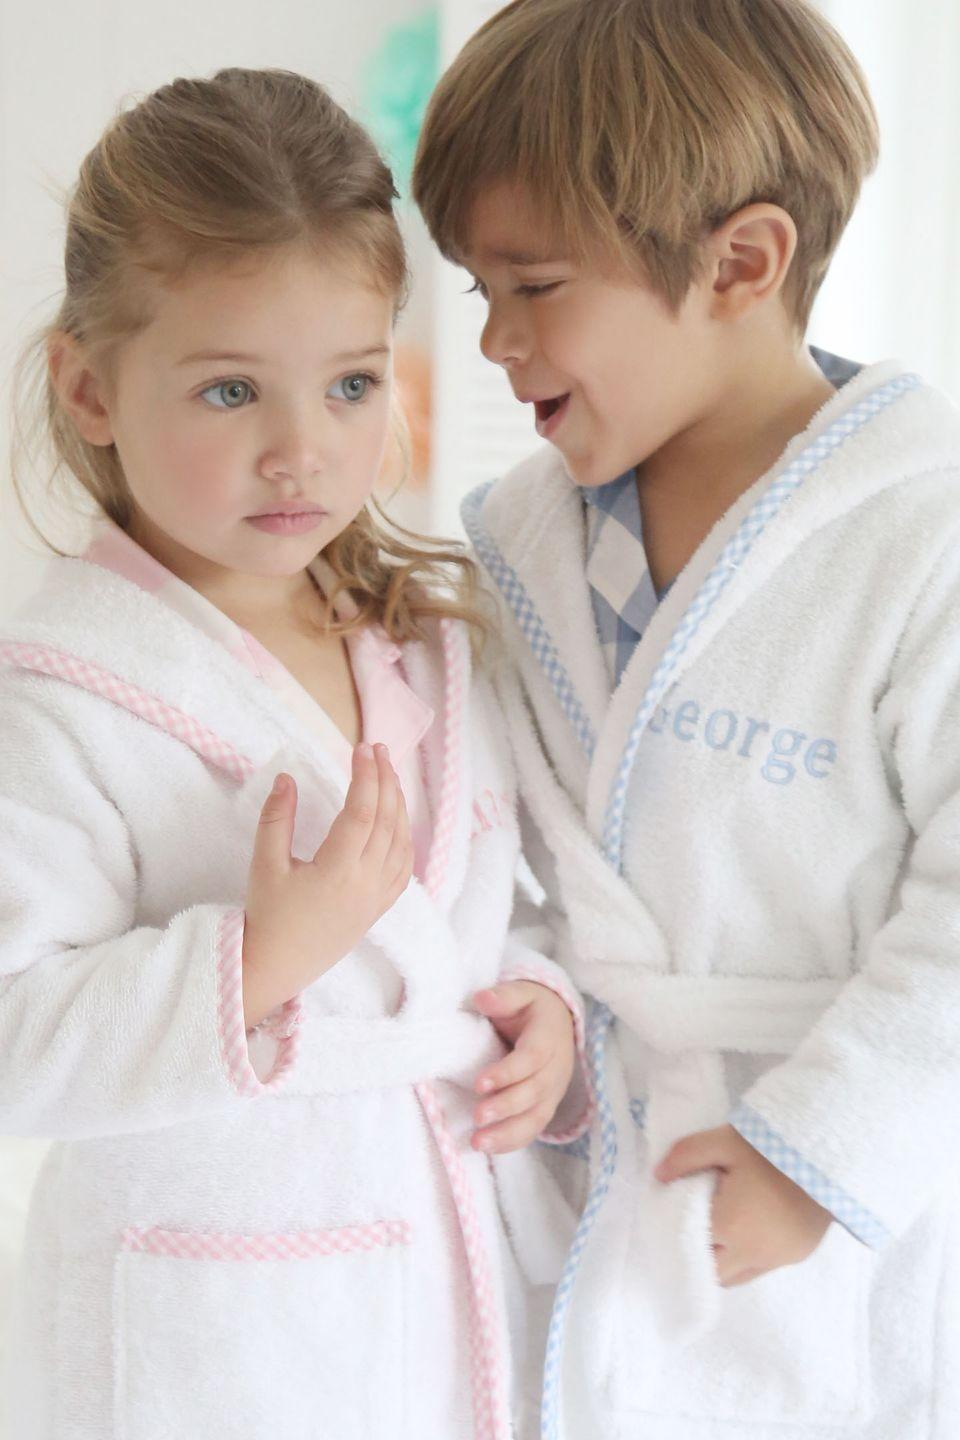 """<p>What do you wear to meet the American president? Some stylish nightwear of course. Prince George met Barack Obama in 2016 in a gingham trim dressing gown, personalised with his name, from My 1st Years. The brand is renowned for its customised baby gifts and sells everything from rucksacks to soft toys – all of which can be named.</p><p><a class=""""link rapid-noclick-resp"""" href=""""https://www.my1styears.com/"""" rel=""""nofollow noopener"""" target=""""_blank"""" data-ylk=""""slk:SHOP NOW"""">SHOP NOW</a></p>"""